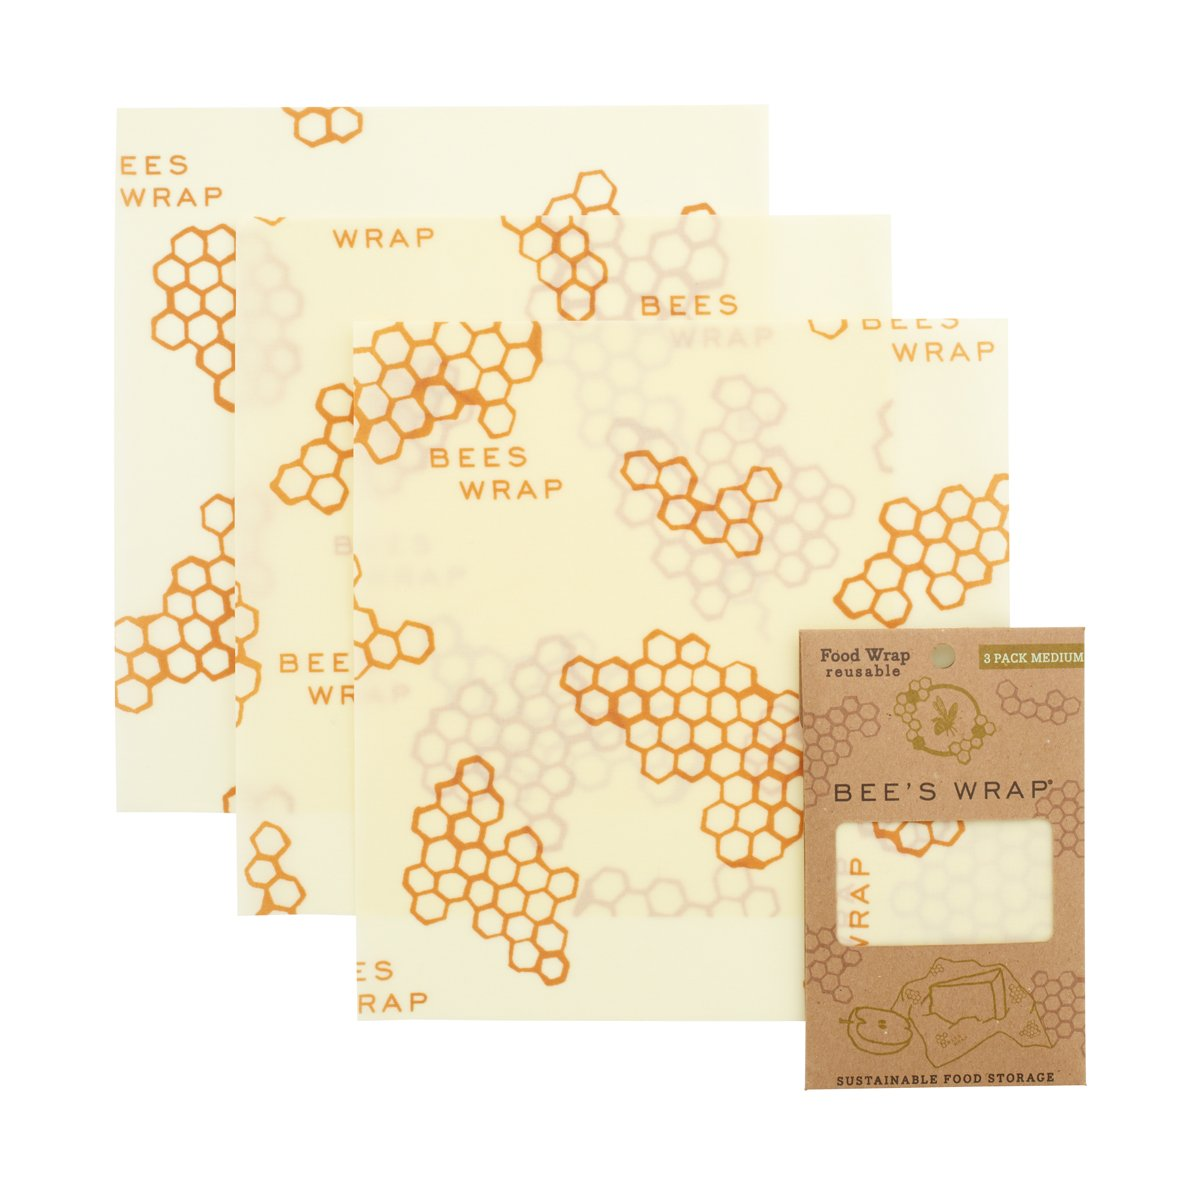 Bee's Wrap 3 pack Medium